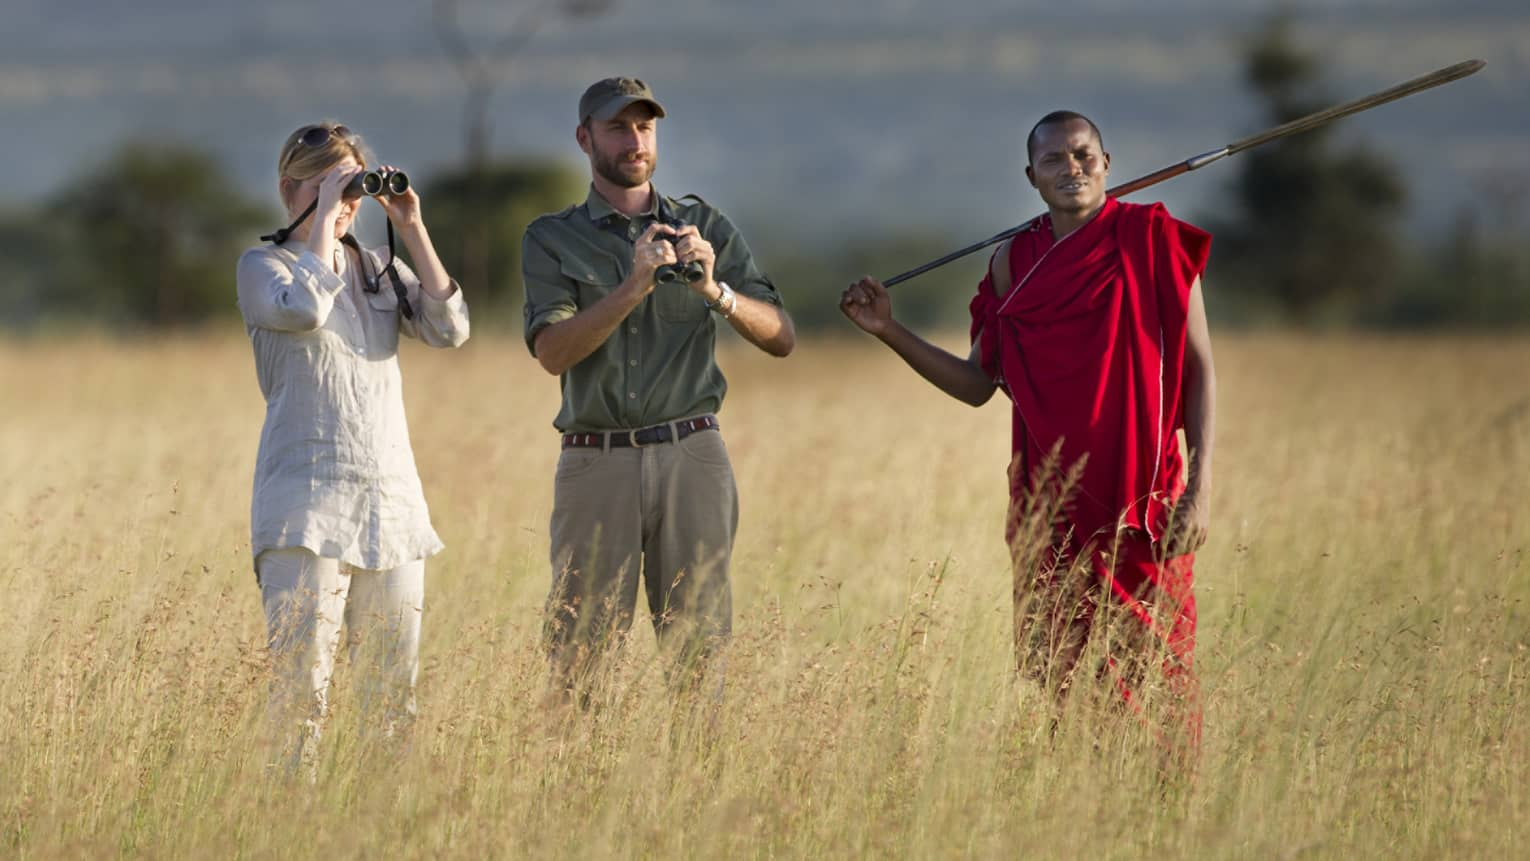 Couple takes photos on walking safari through tall grass with guides